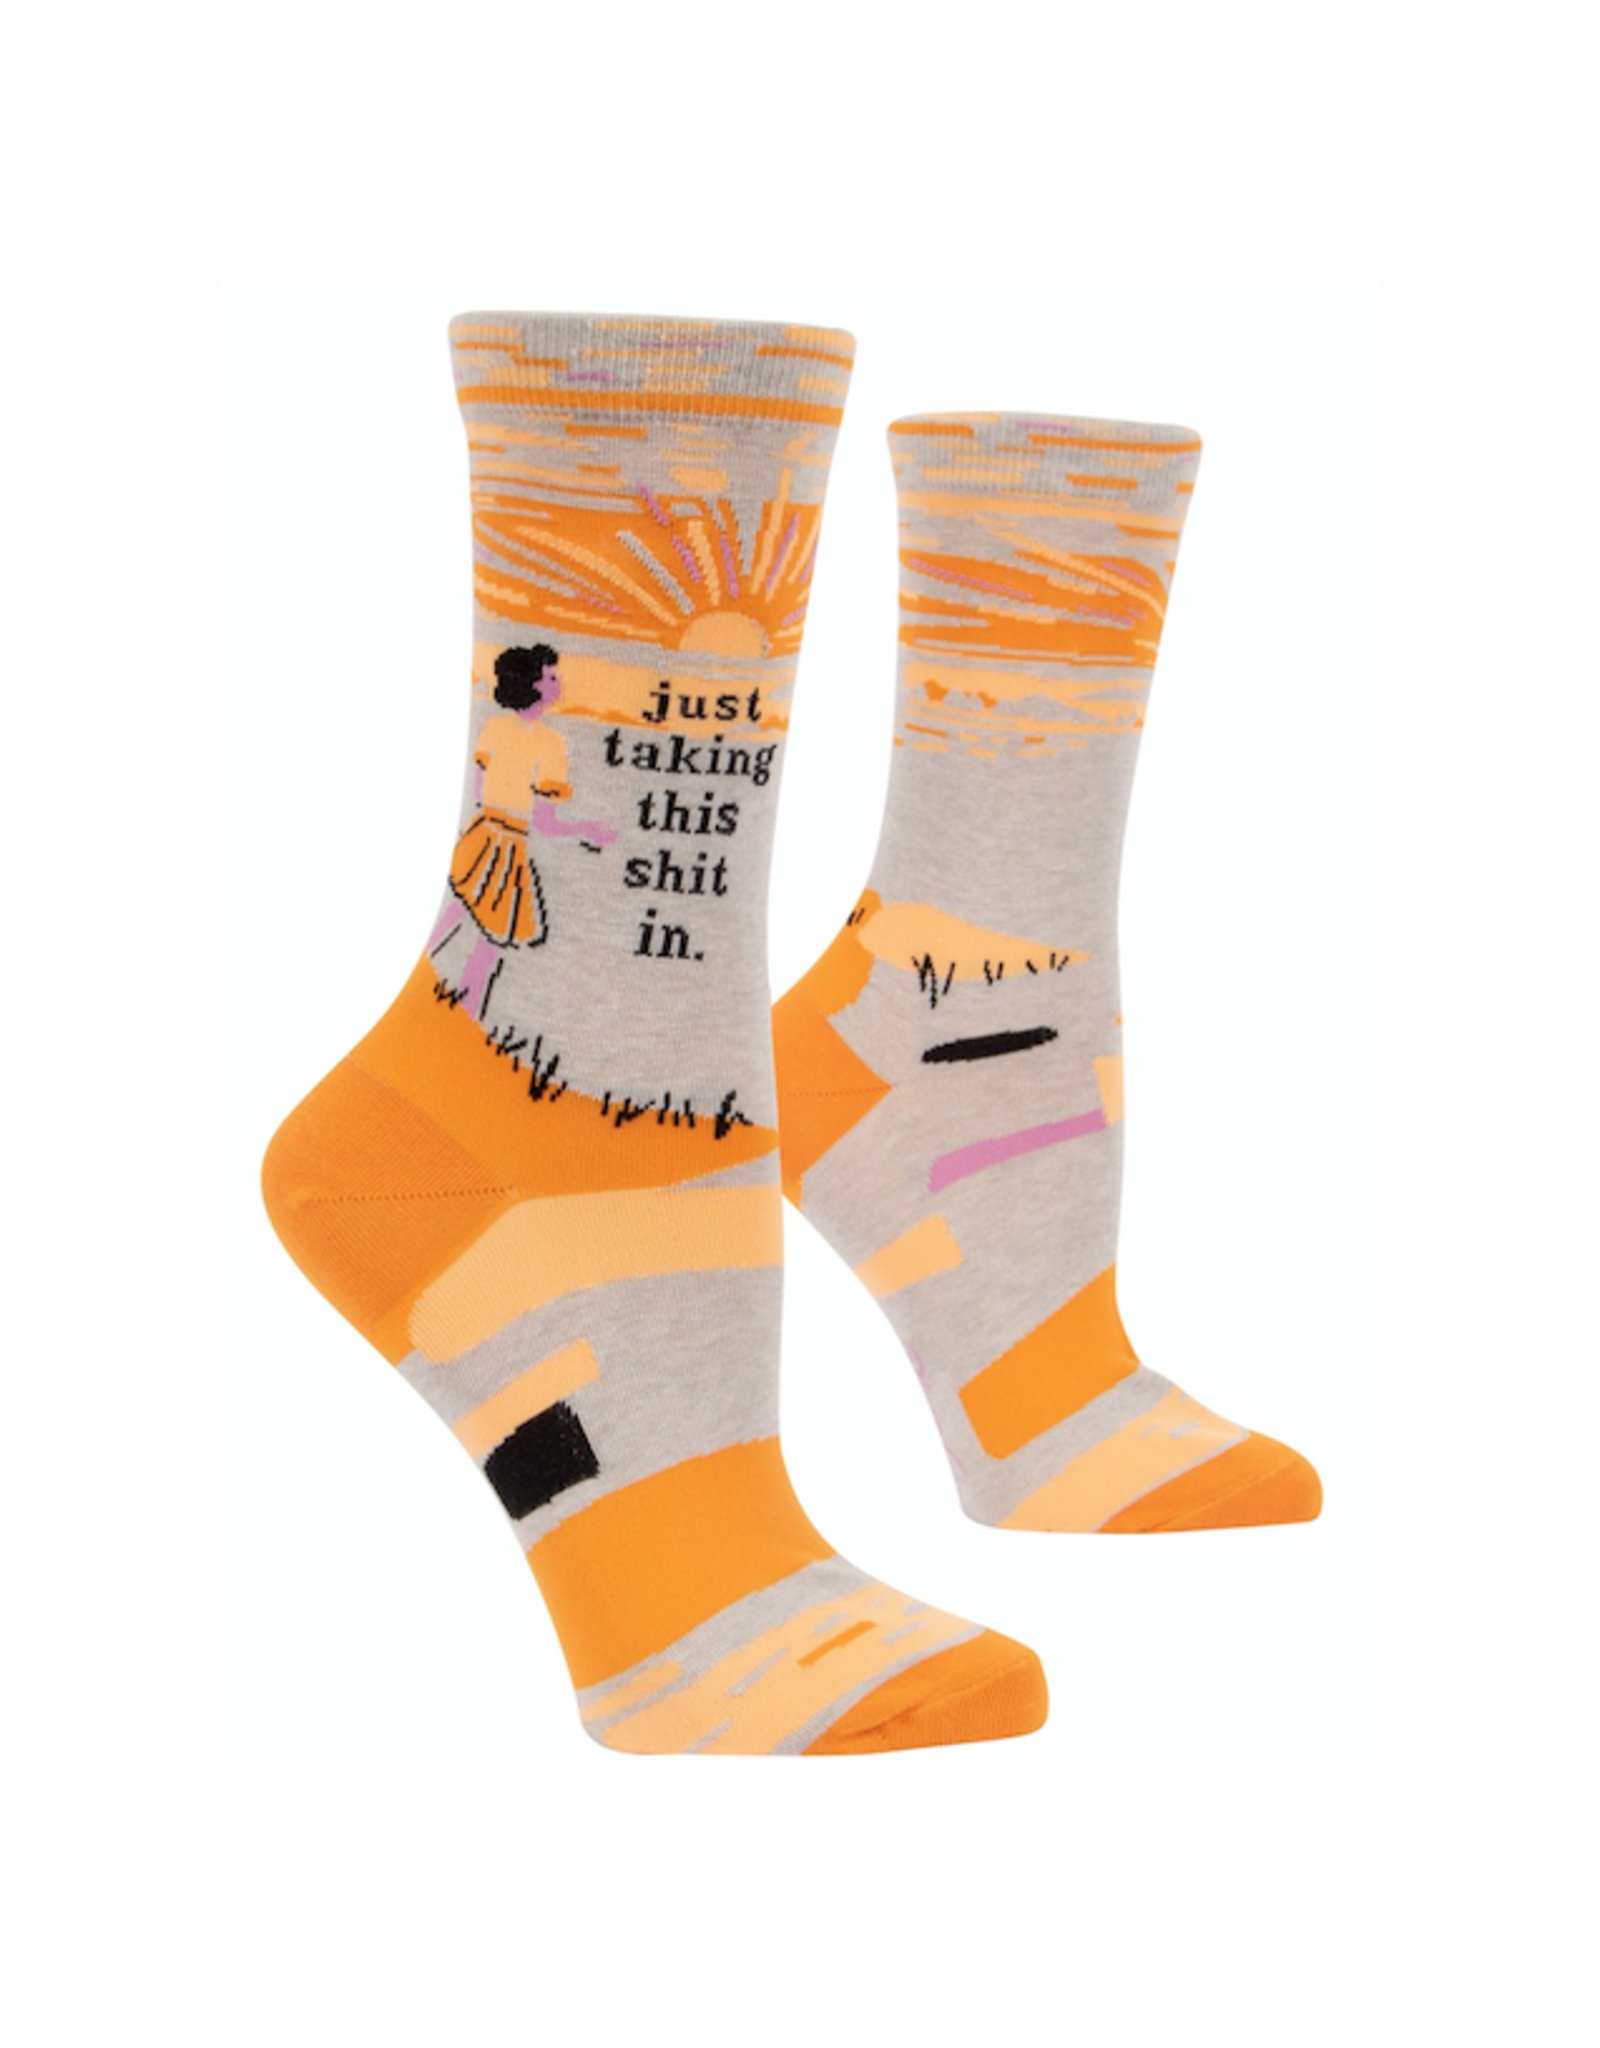 Taking Shit In Women's Crew Socks